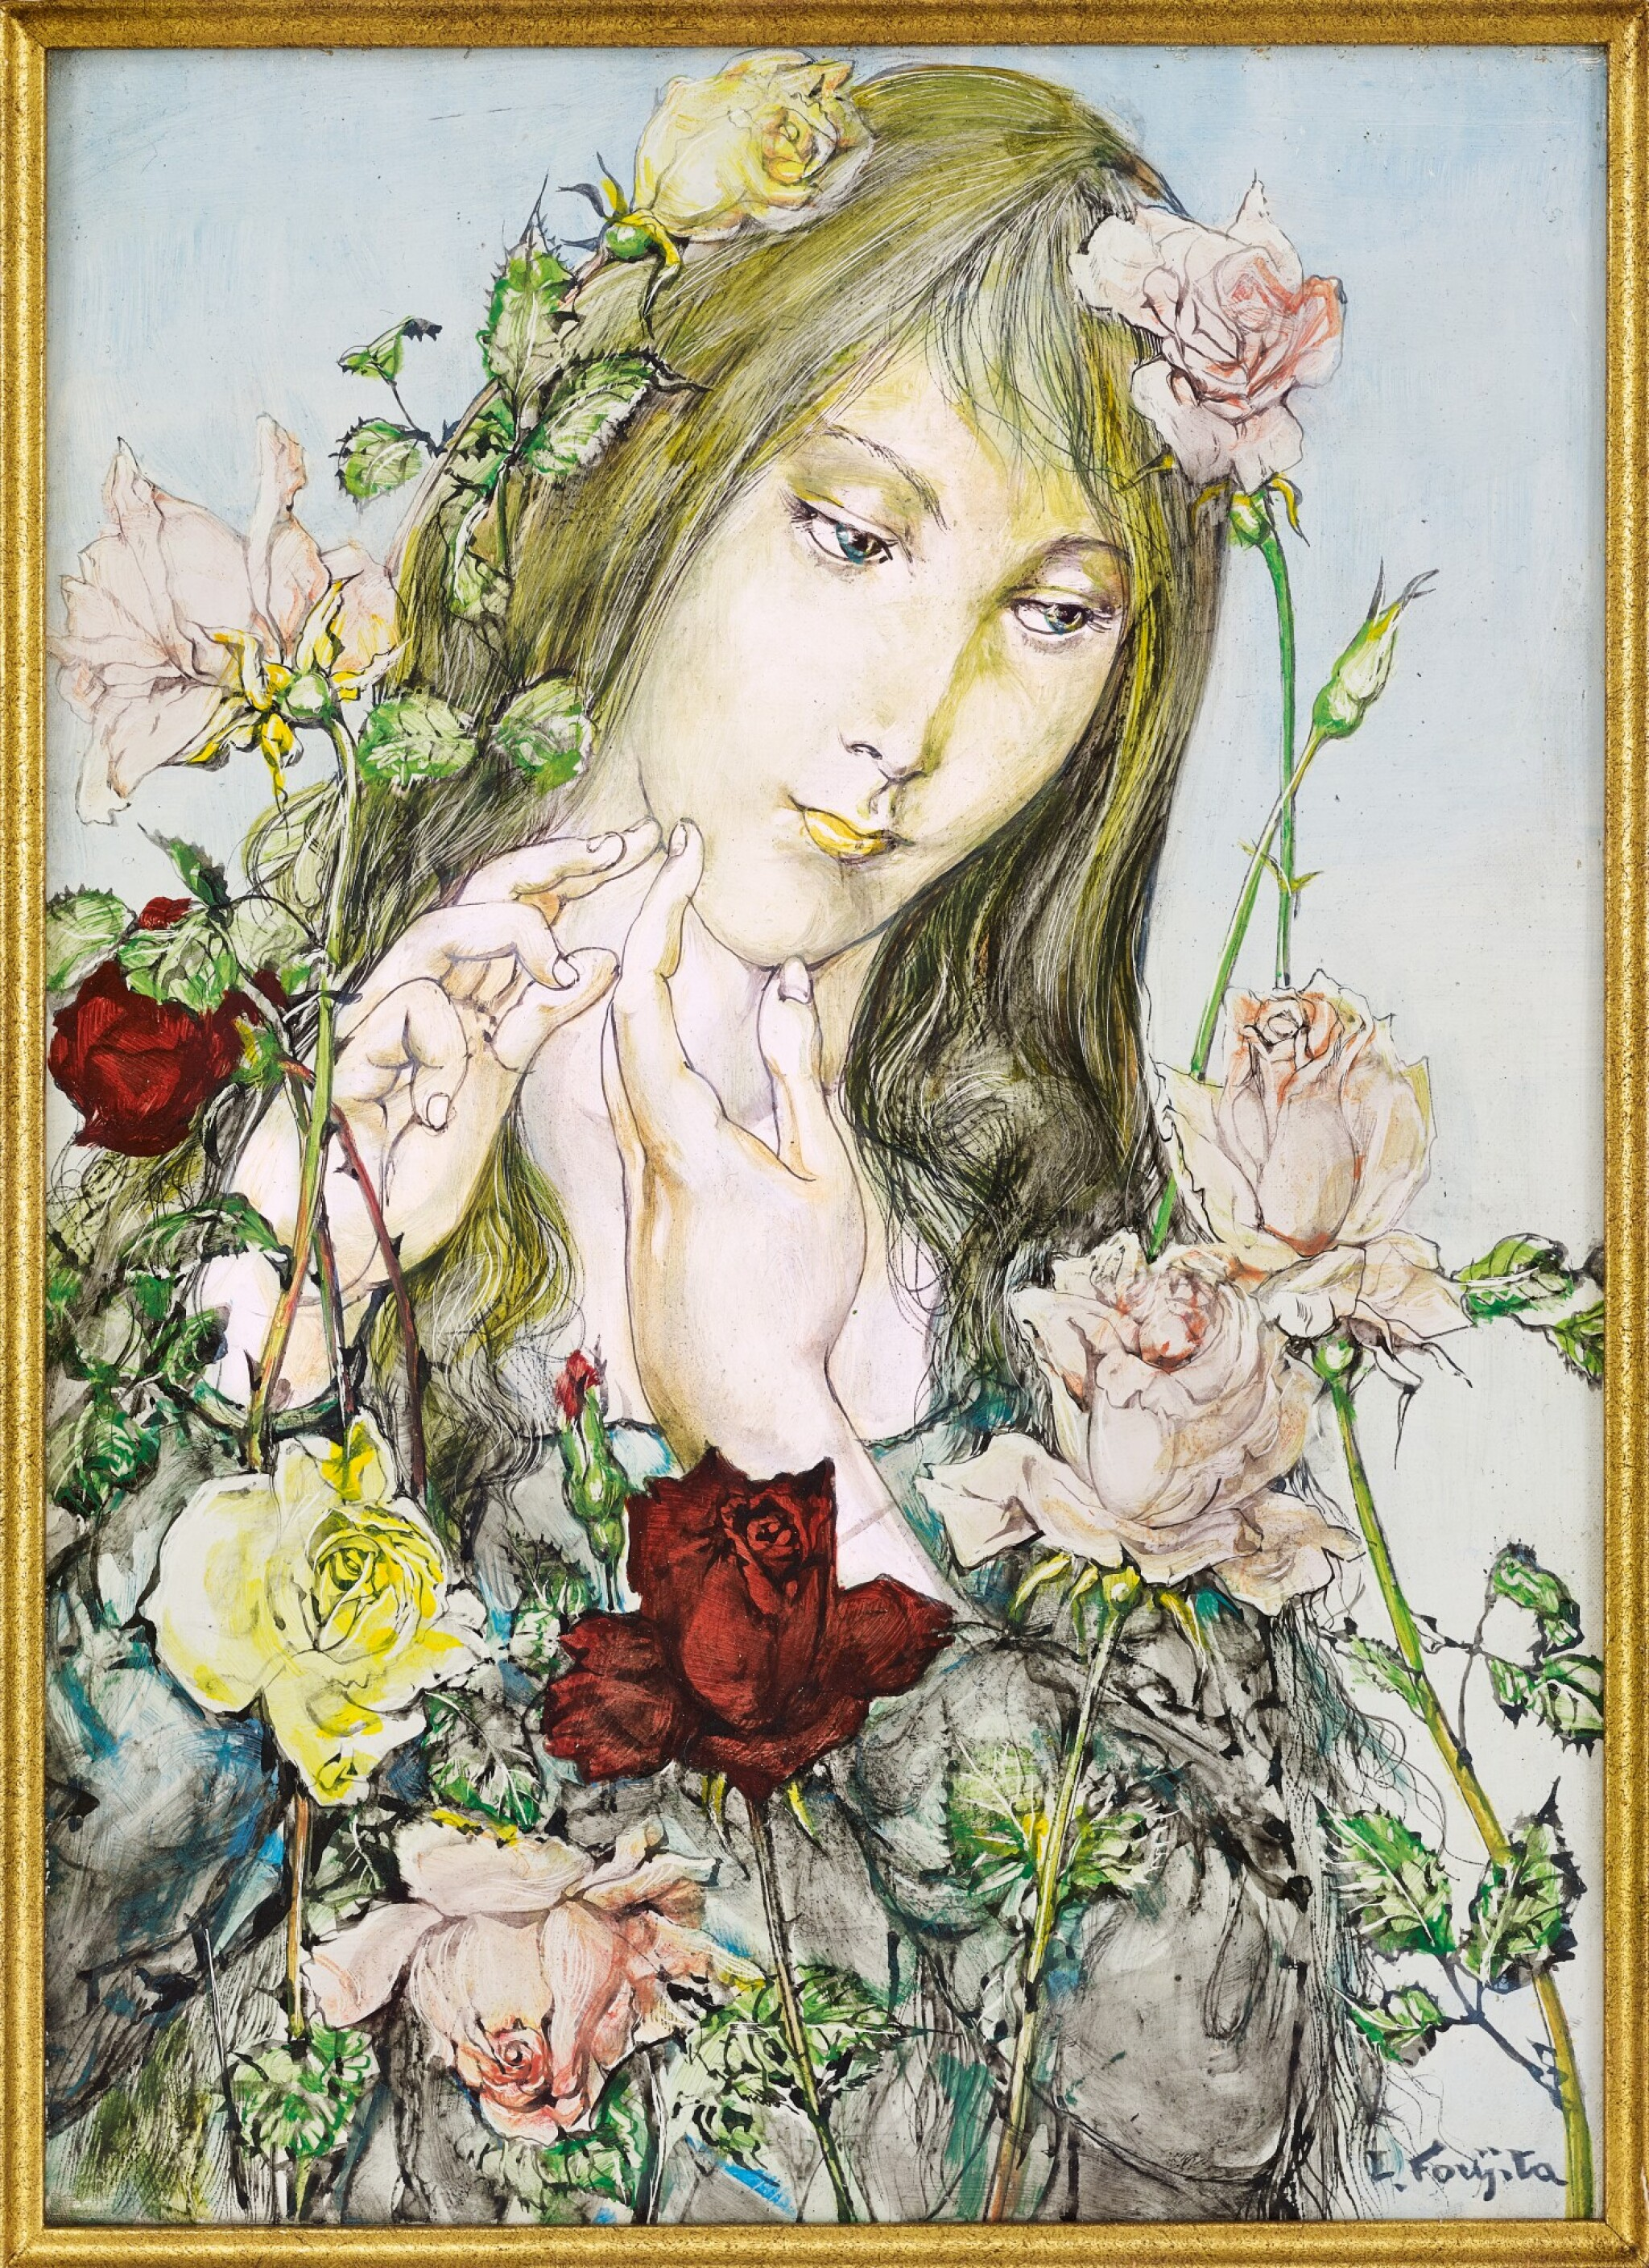 View full screen - View 1 of Lot 1039. Léonard Tsuguharu Foujita 藤田嗣治 | Jeune fille aux fleurs 薔薇少女.